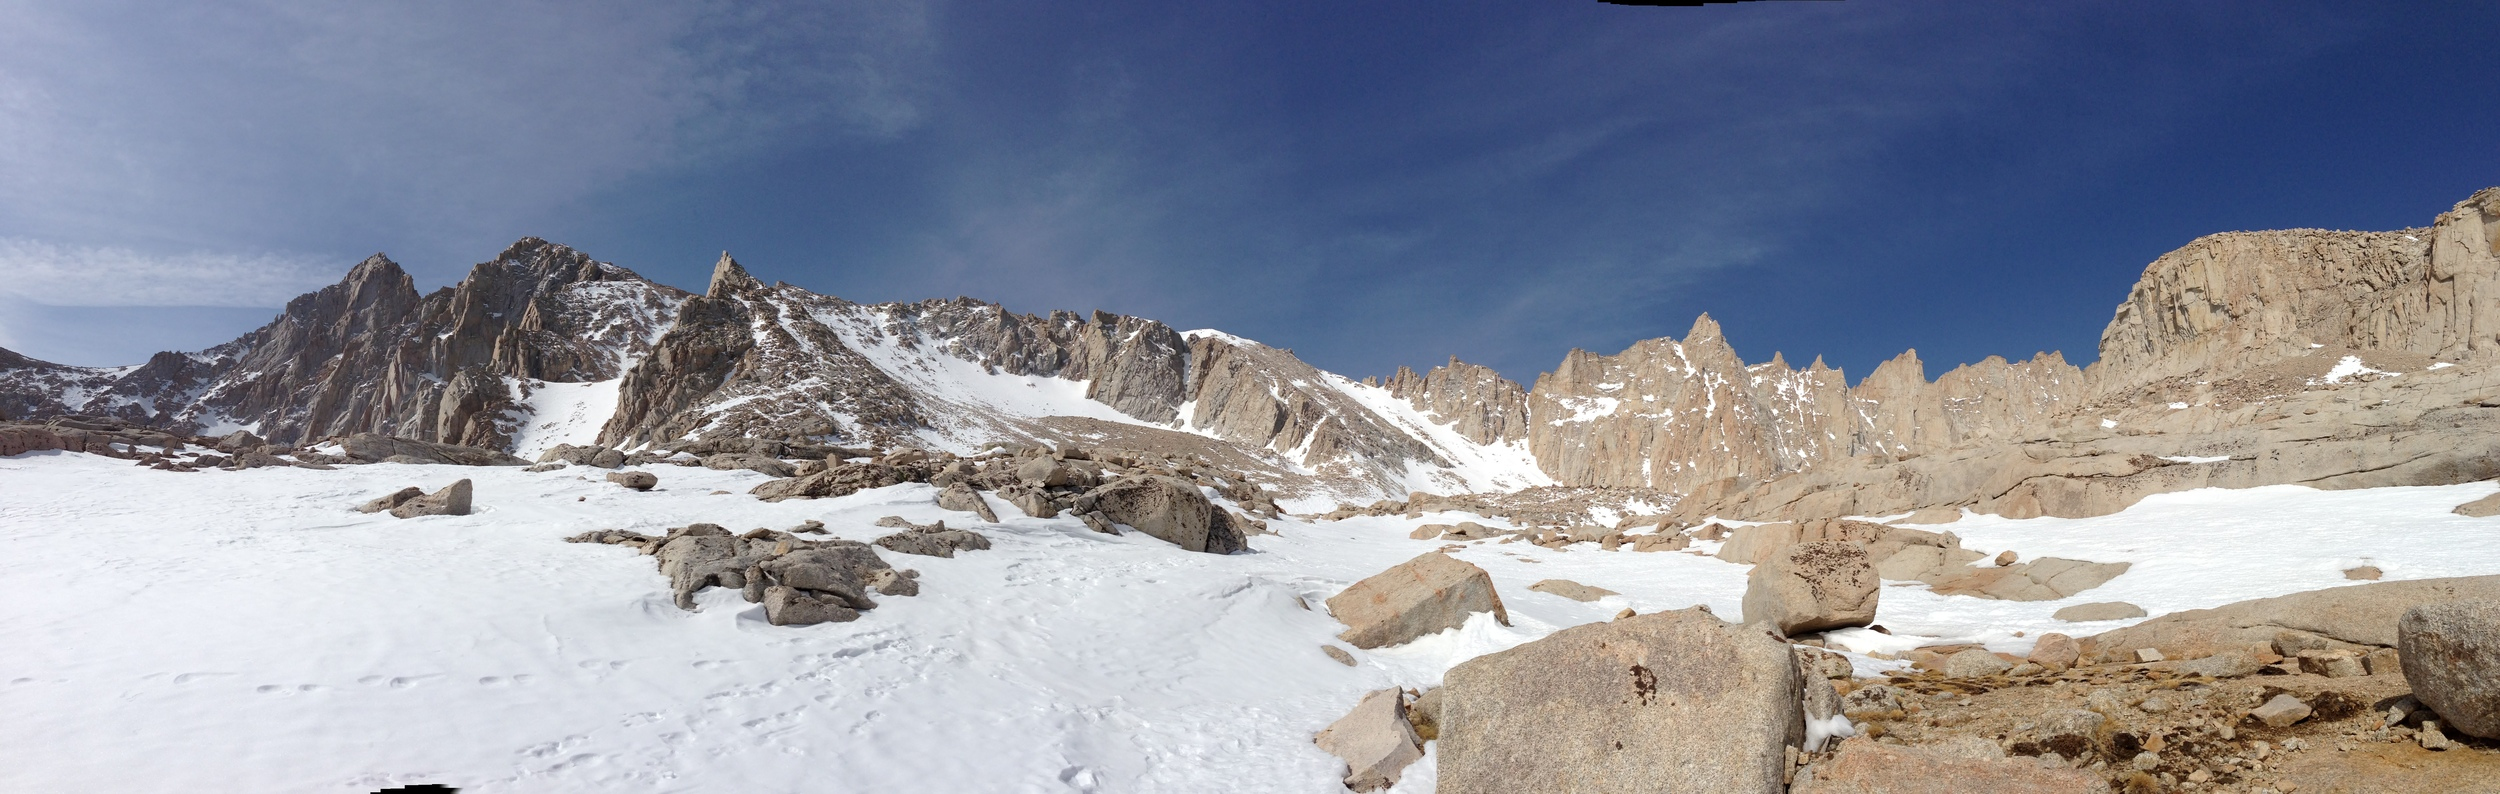 Mt. Whitney Ridgeline, April 8, 2013